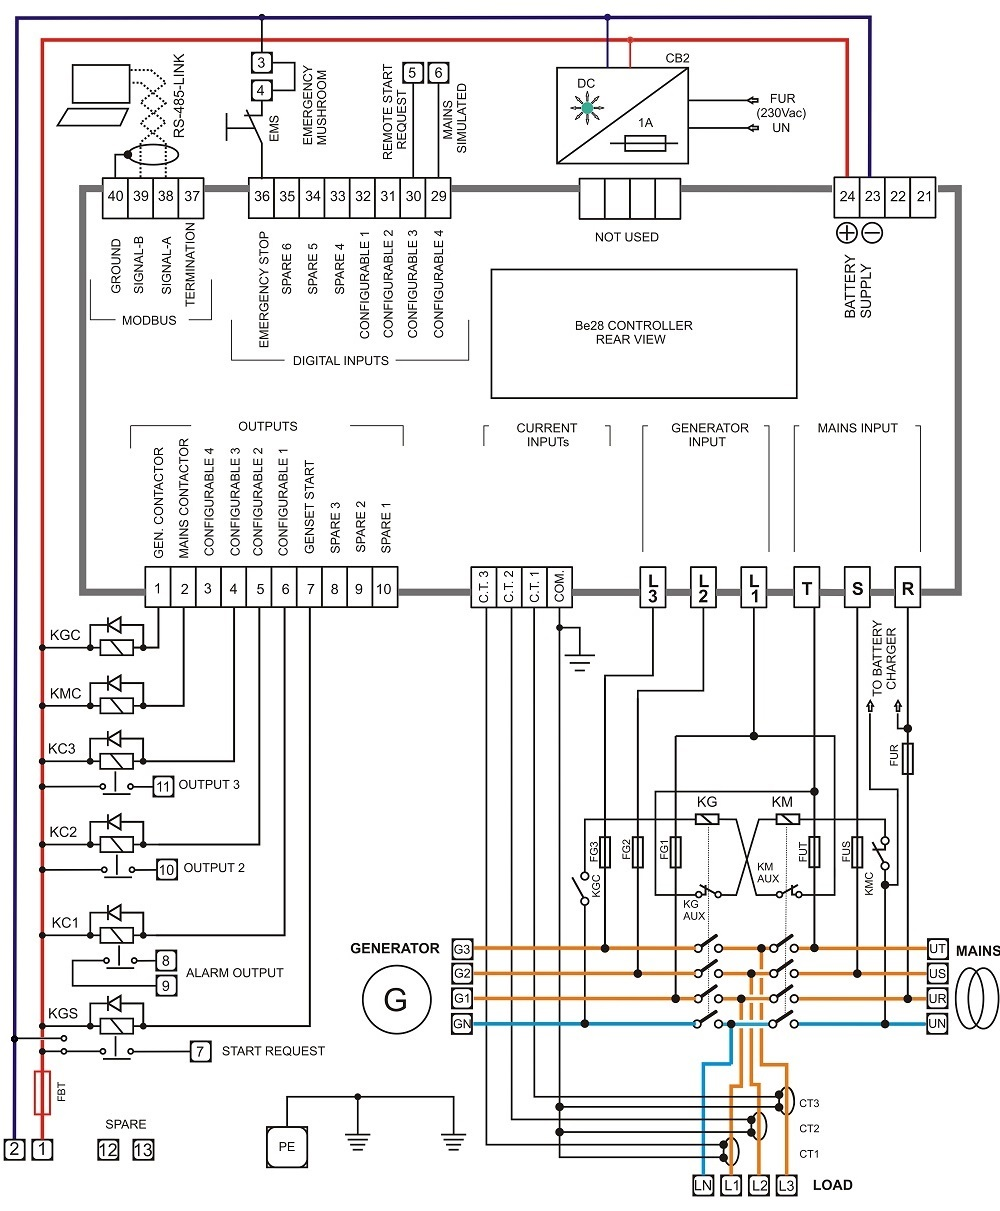 Ats Wiring Harness Library Backup Generator Control Diagram Of Opinions About U2022 Standby Transfer Switch